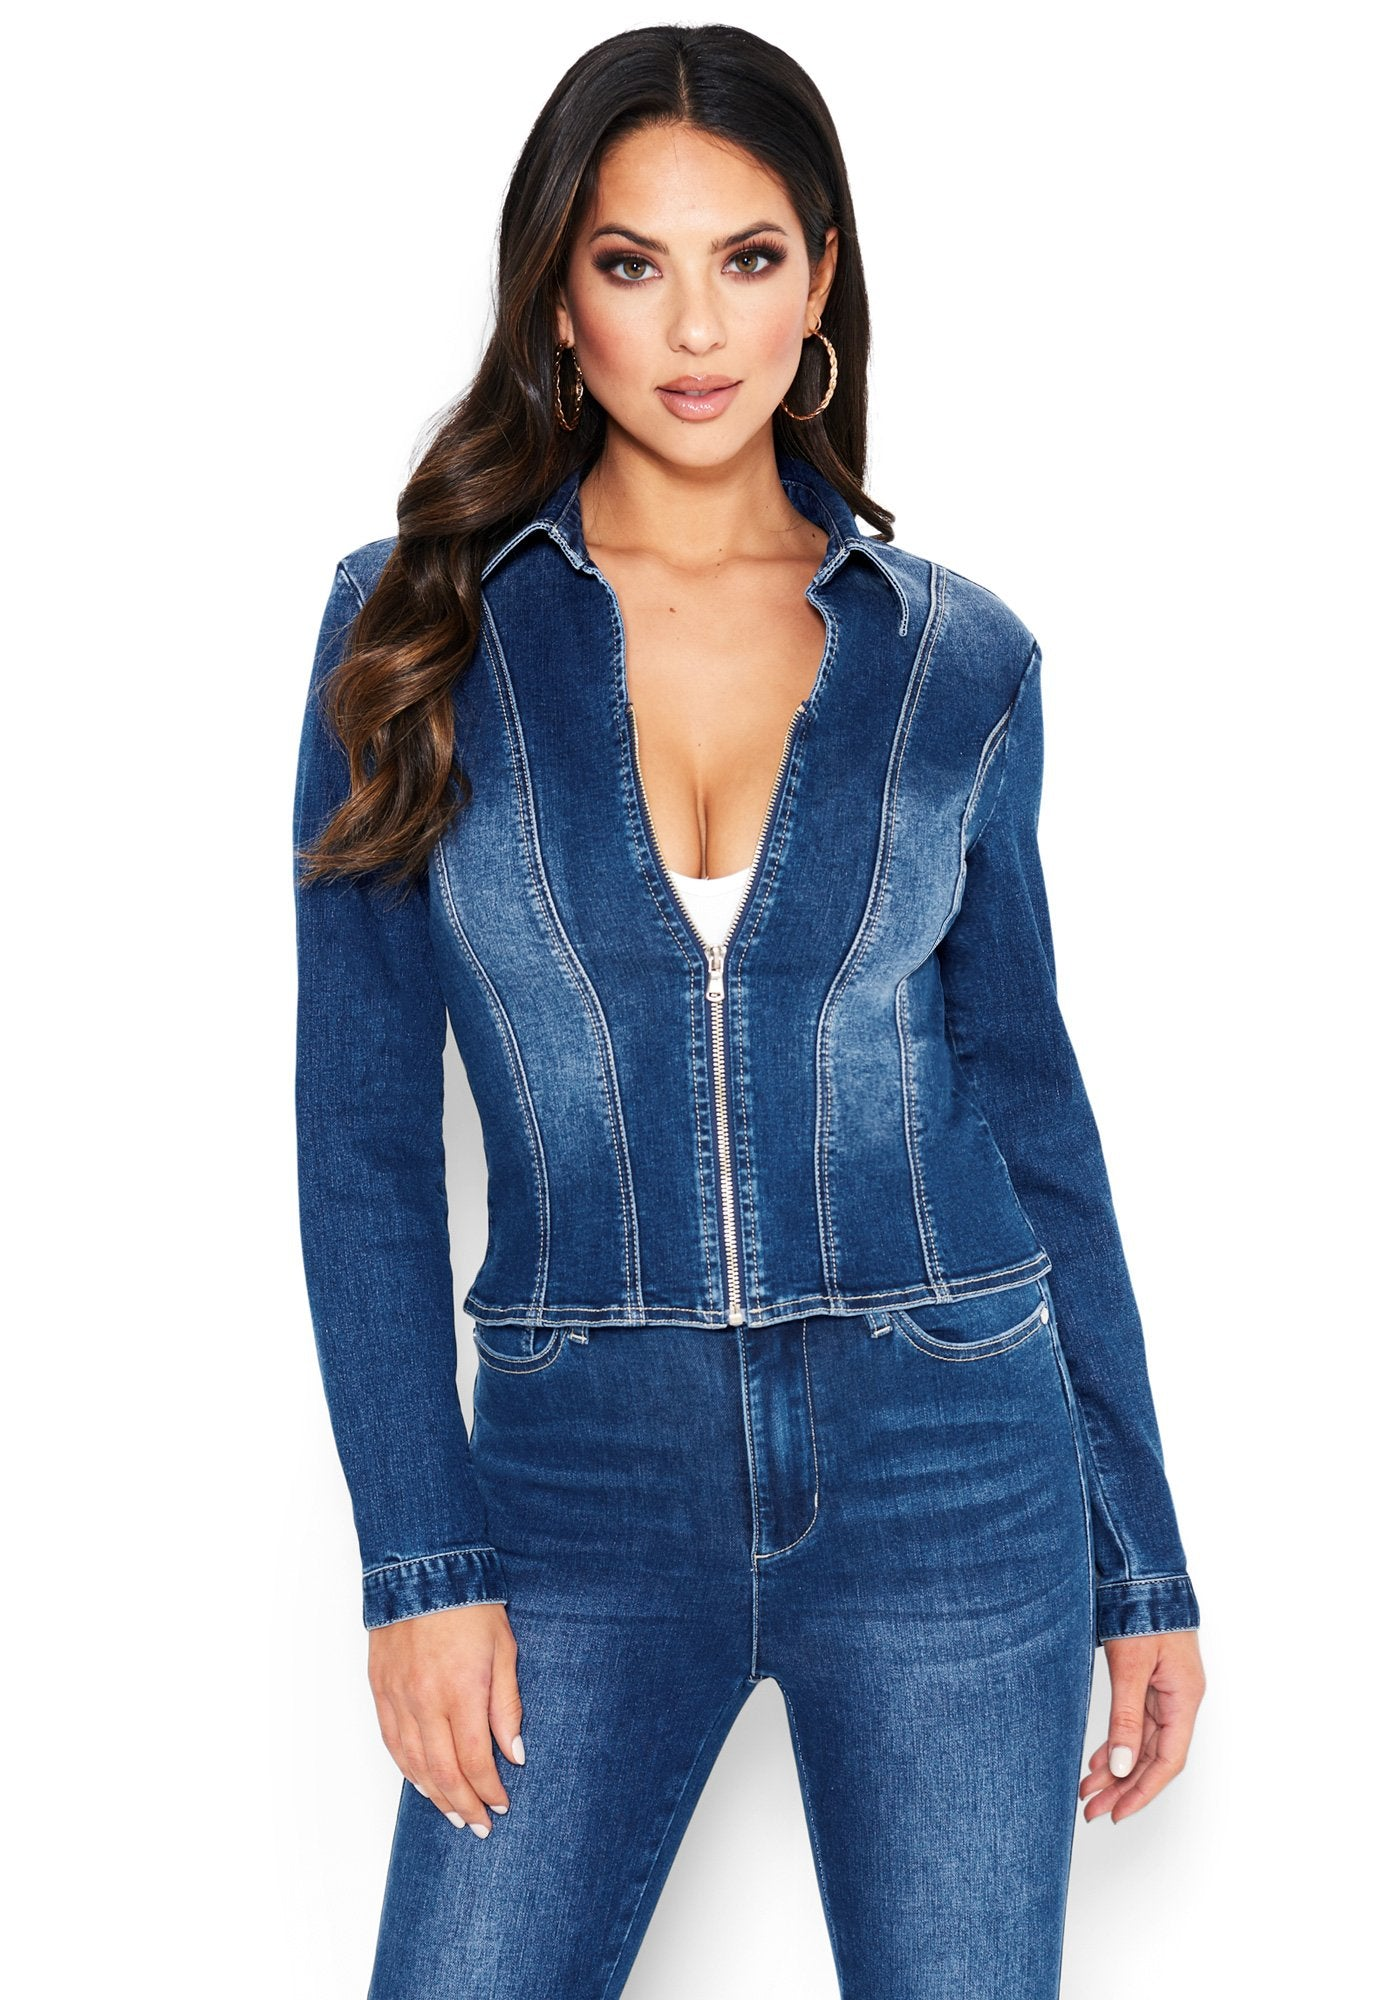 Image of Bebe Women's Deep V Zip Up Denim Jacket, Size Large in MEDIUM INDIGO WASH Cotton/Spandex